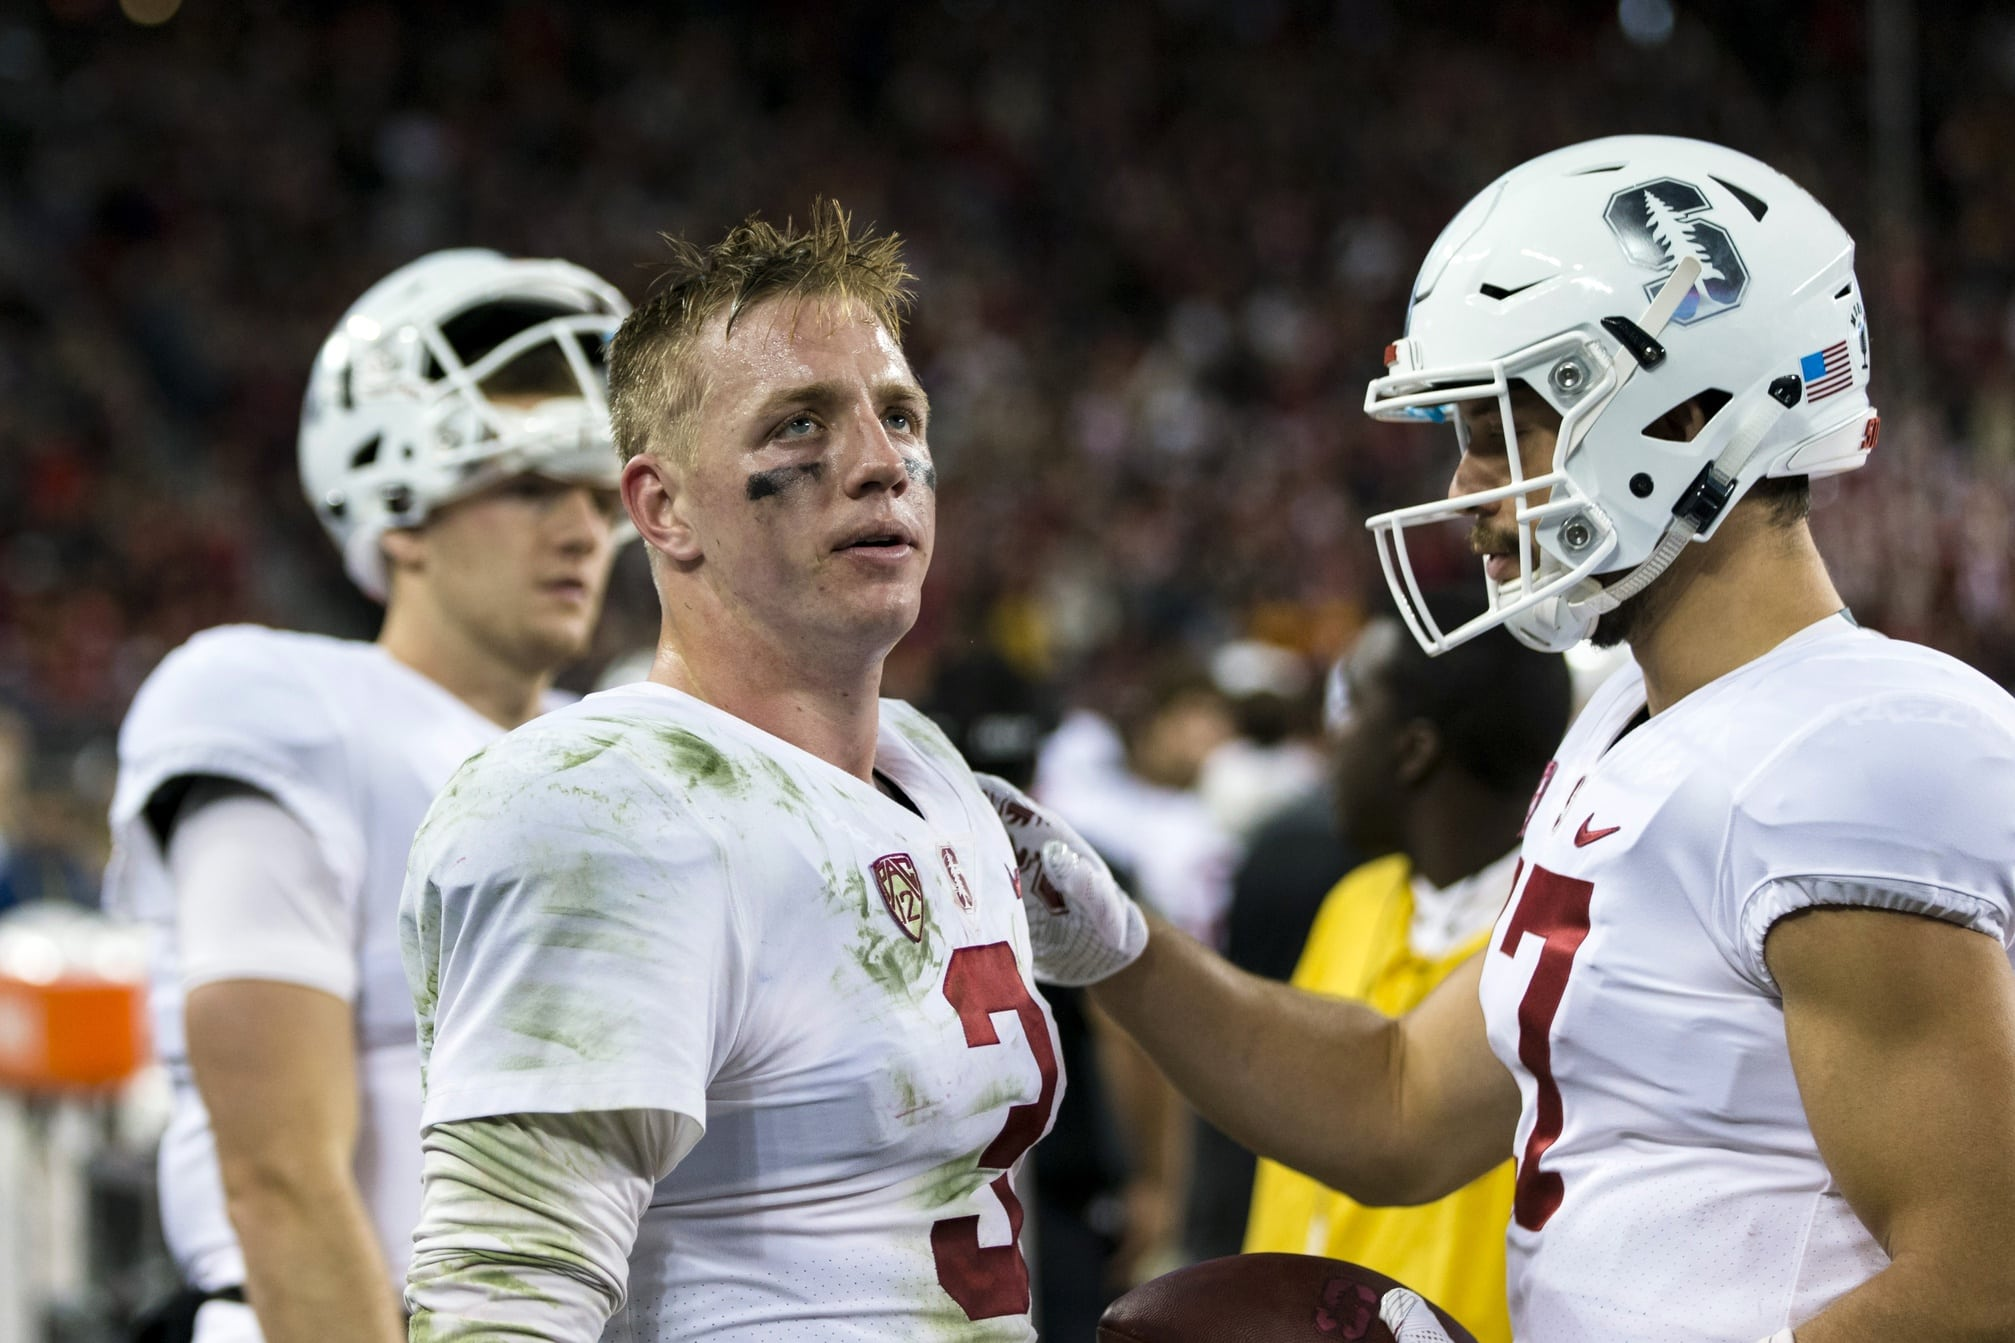 Stanford QB K.J. Costello to miss game against USC